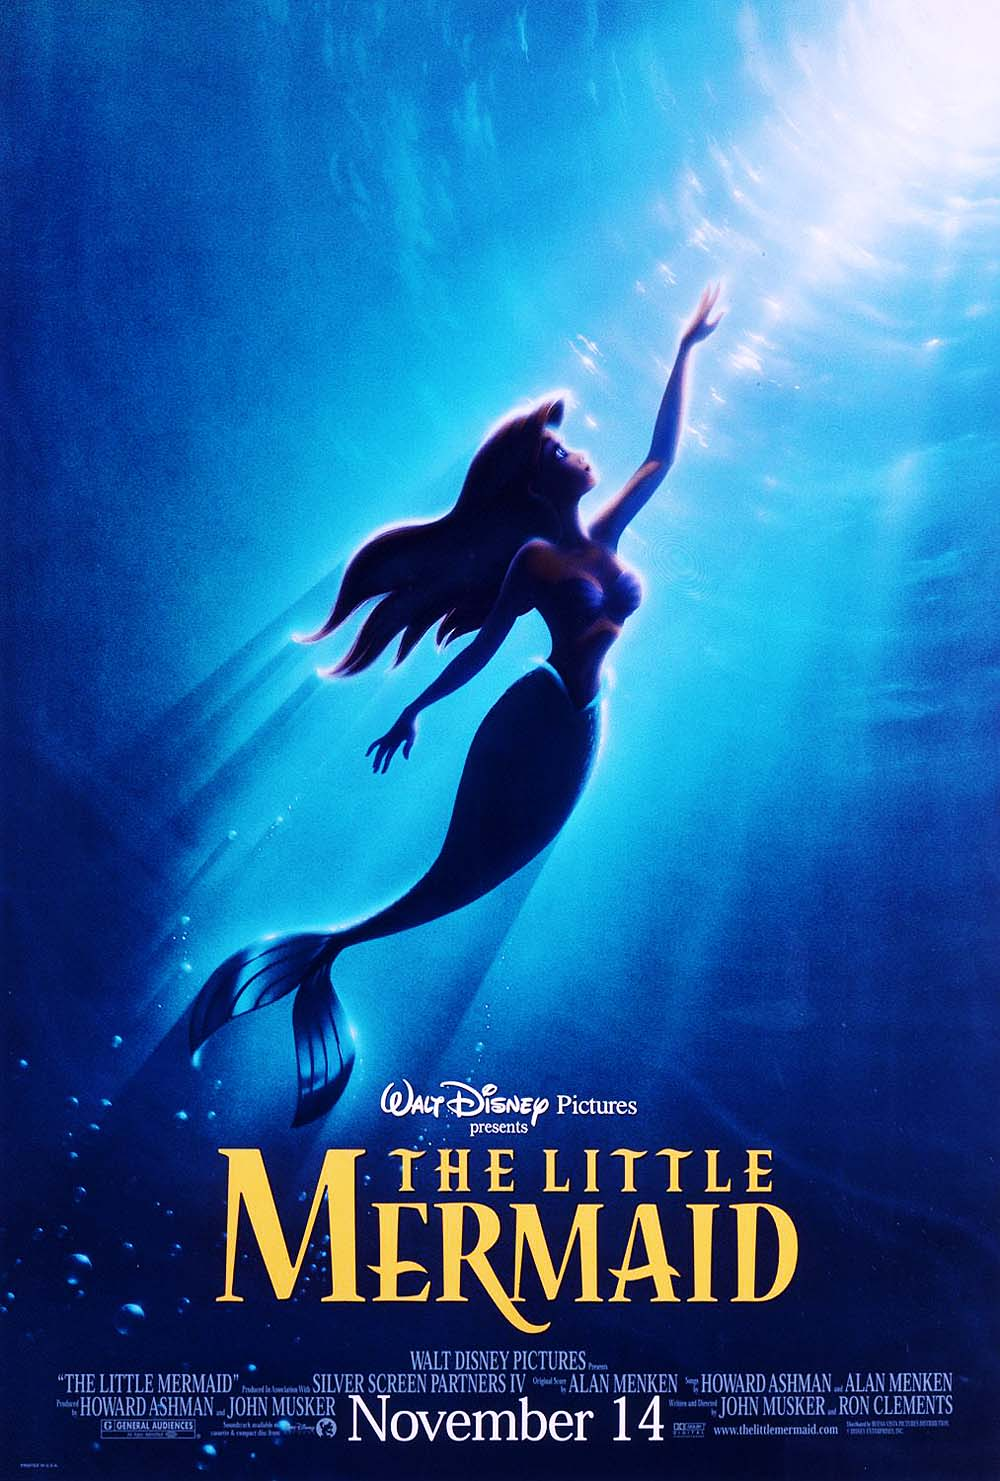 The Little Mermaid Advance Poster